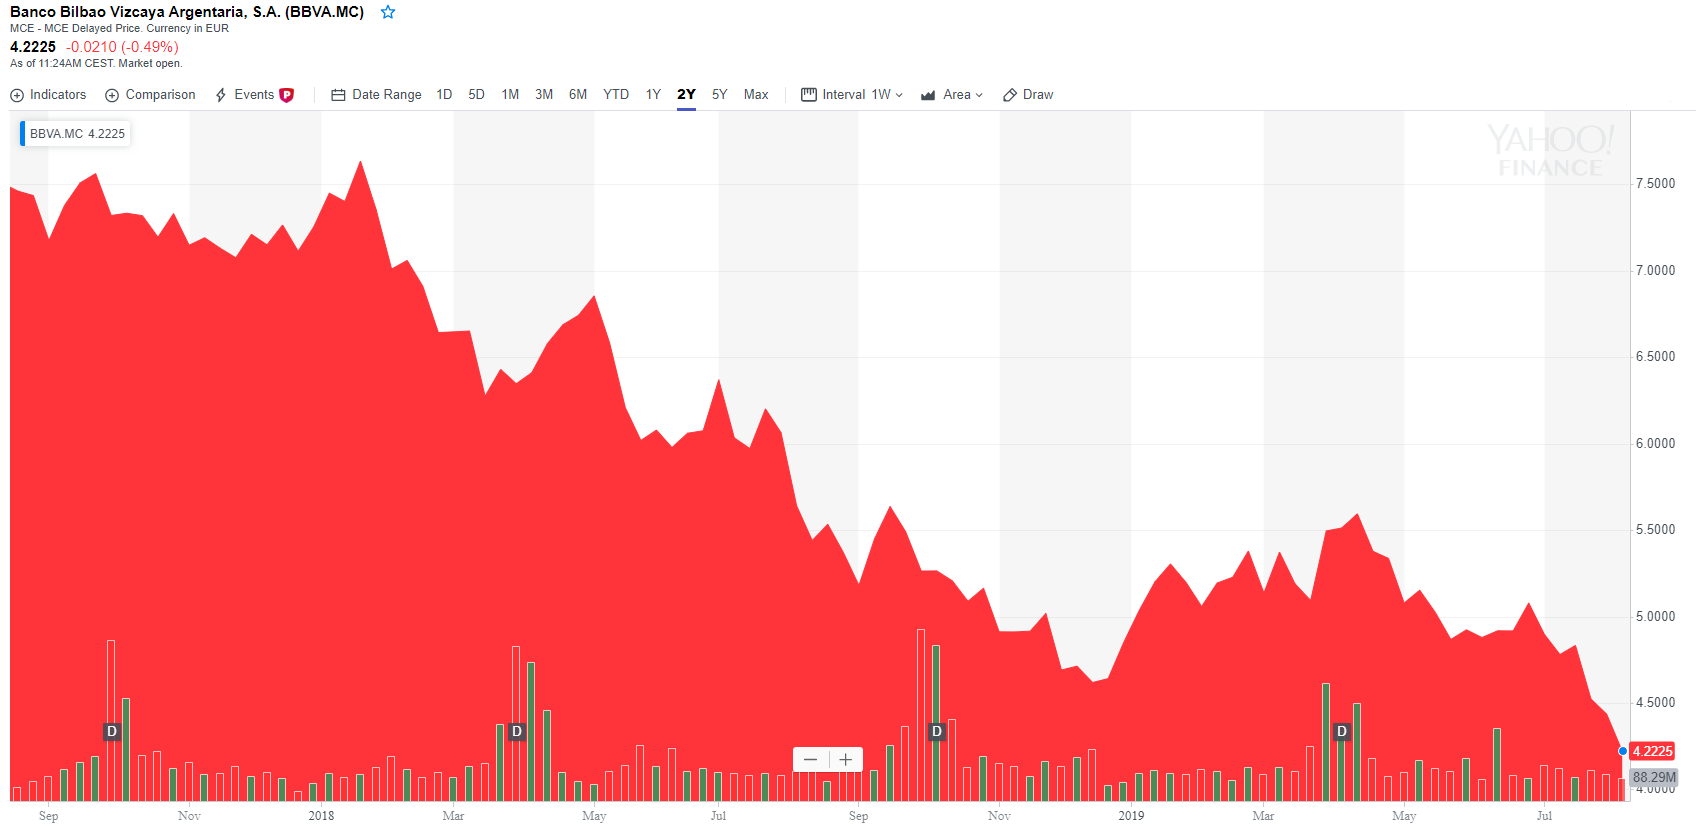 The Recent Share Price Drop In 6% Yielding Banco Bilbao Vizcaya Argentaria Is Not Justified